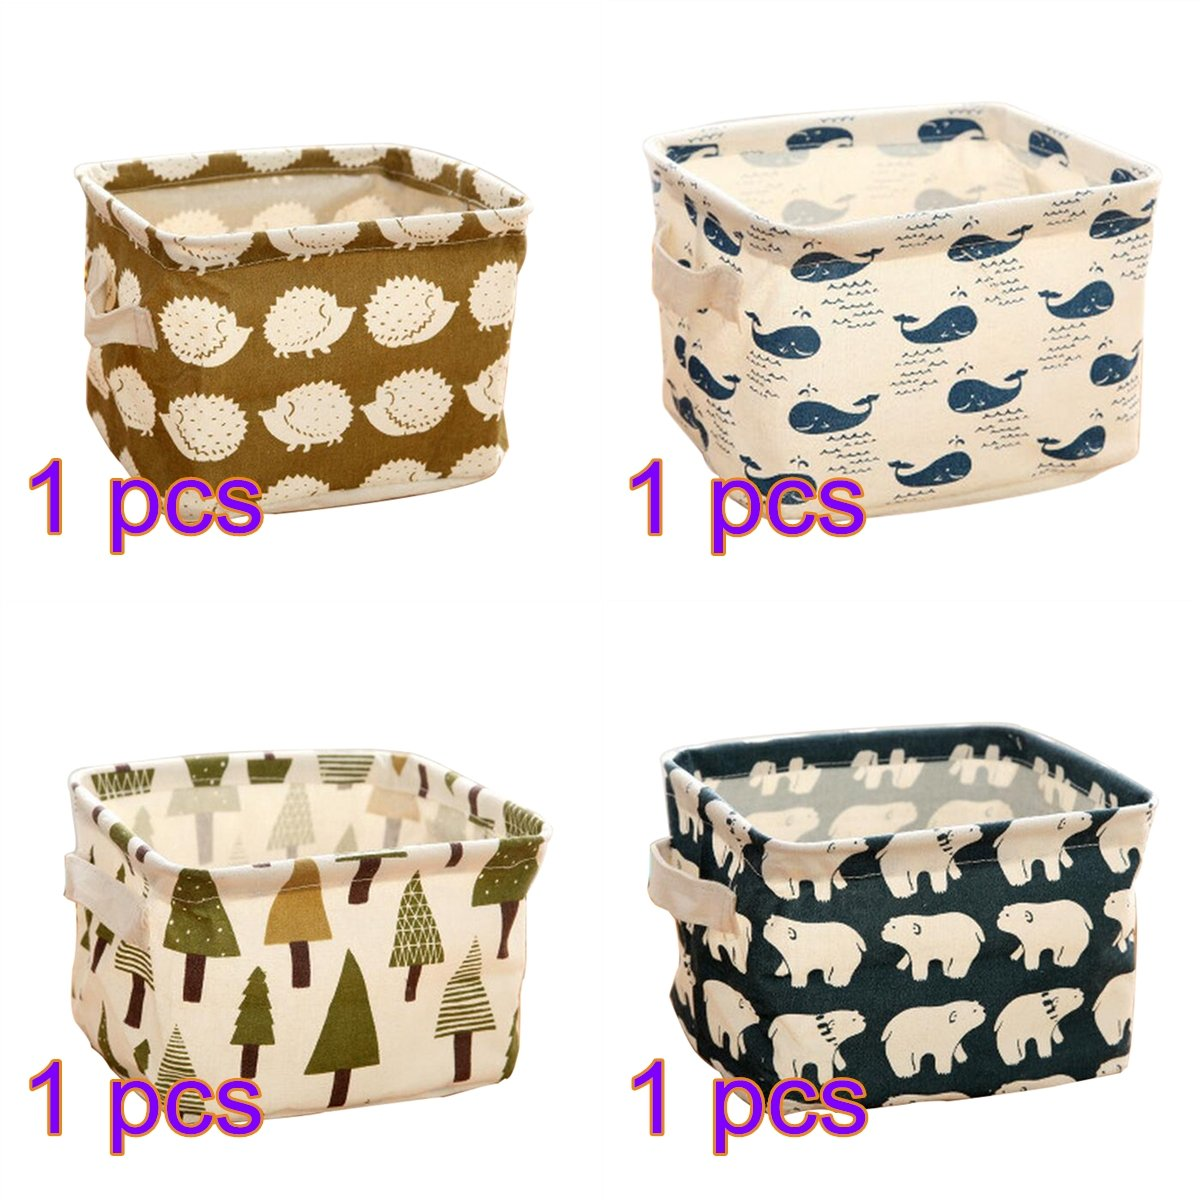 Hosaire 4 Pcs Foldable Cube Storage Bin Fabric Basket Organizer Containers Drawers for Nursery, Offices, Home Organization